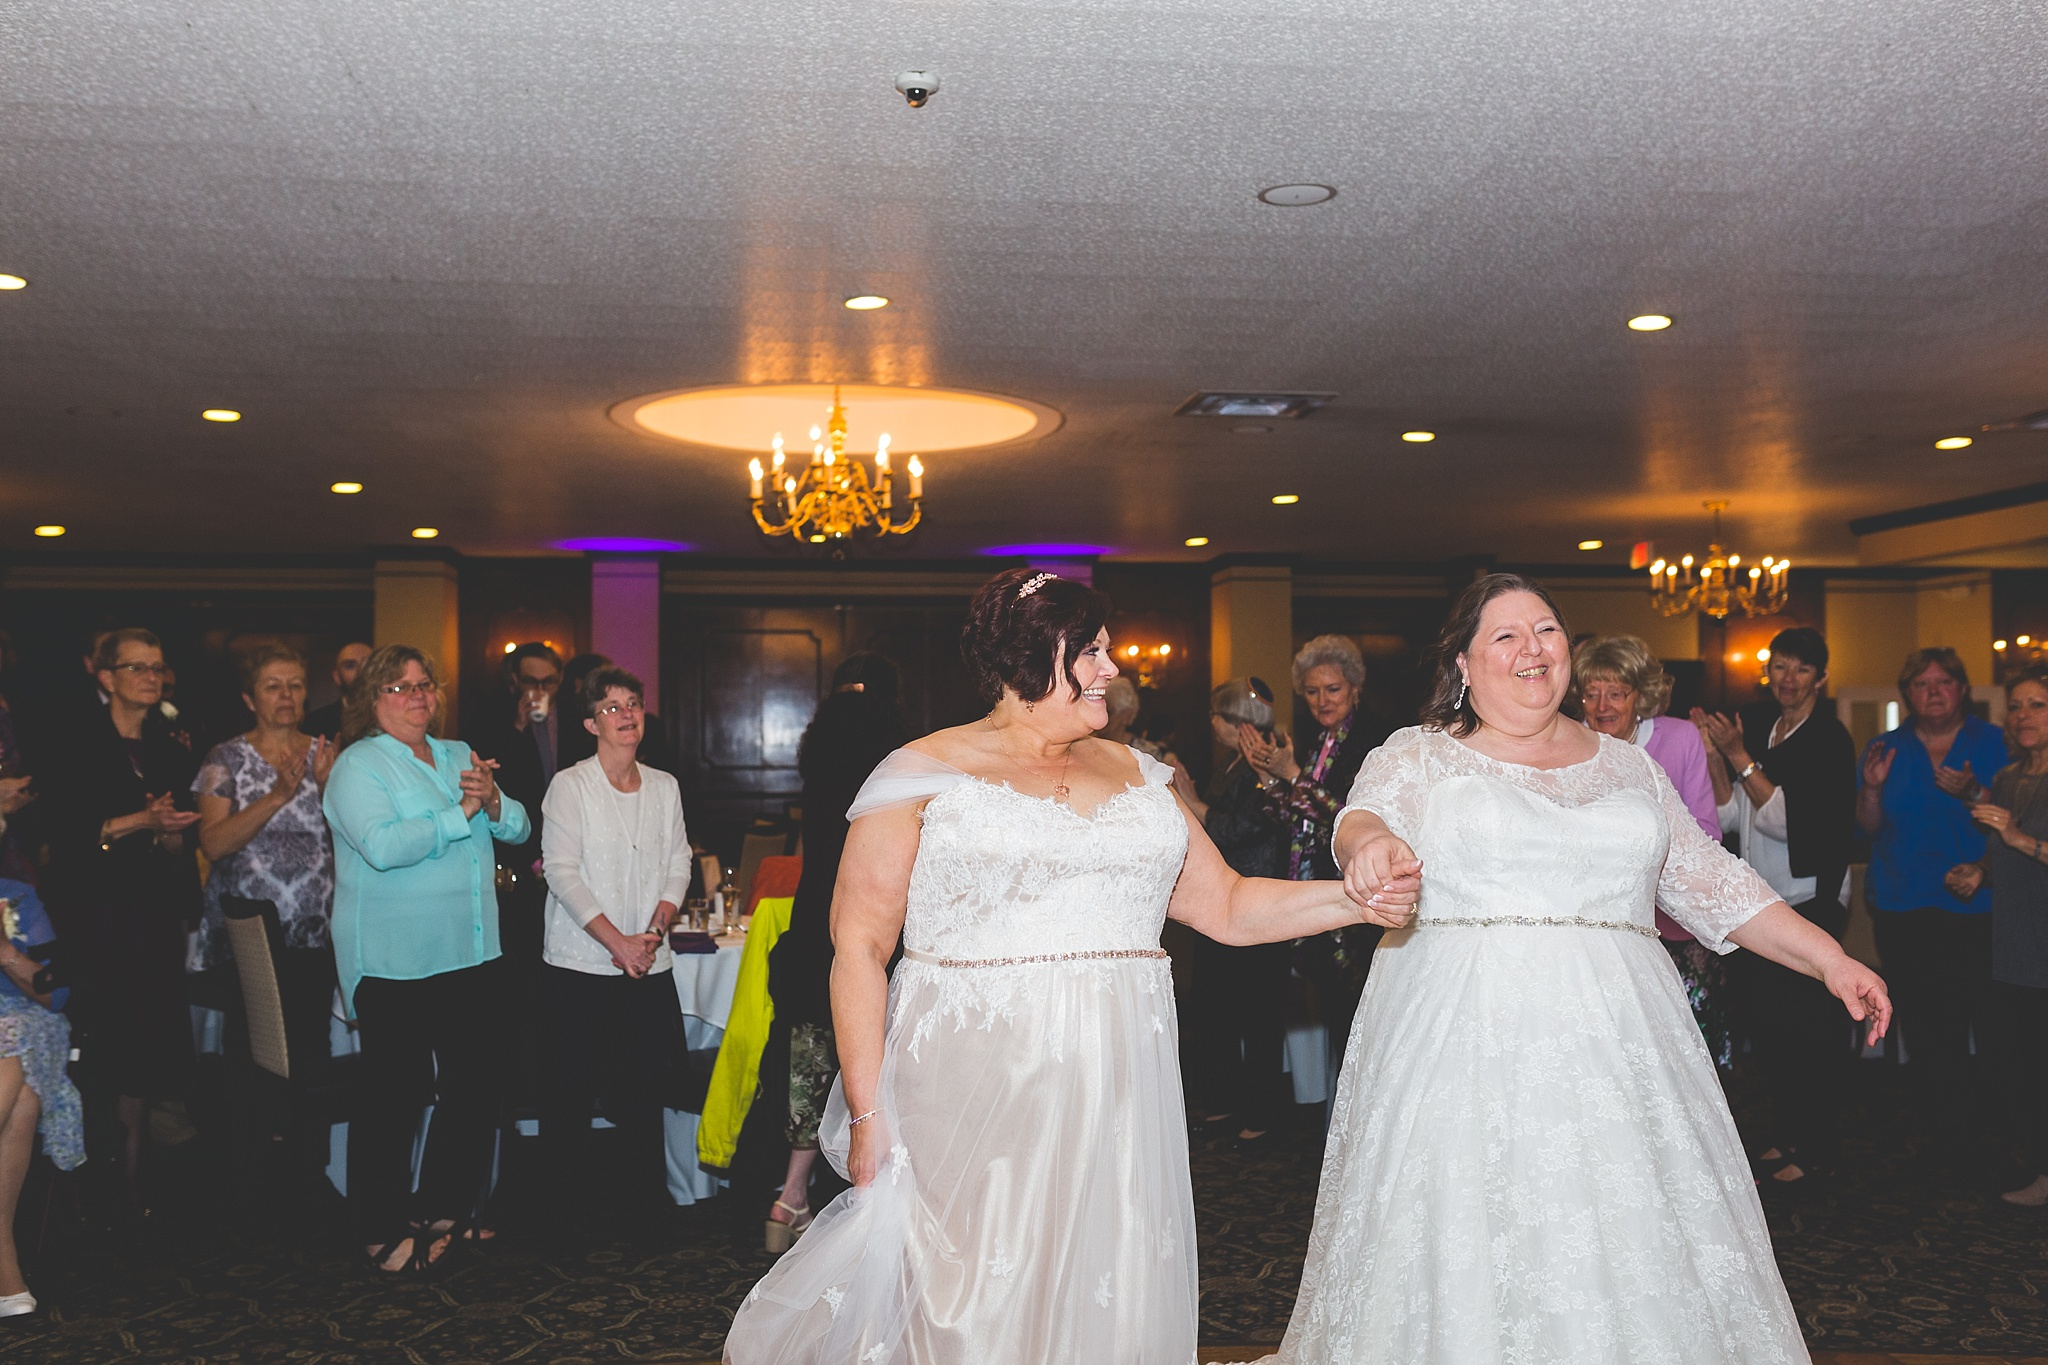 Albany_Wedding_Photographer_8799.jpg